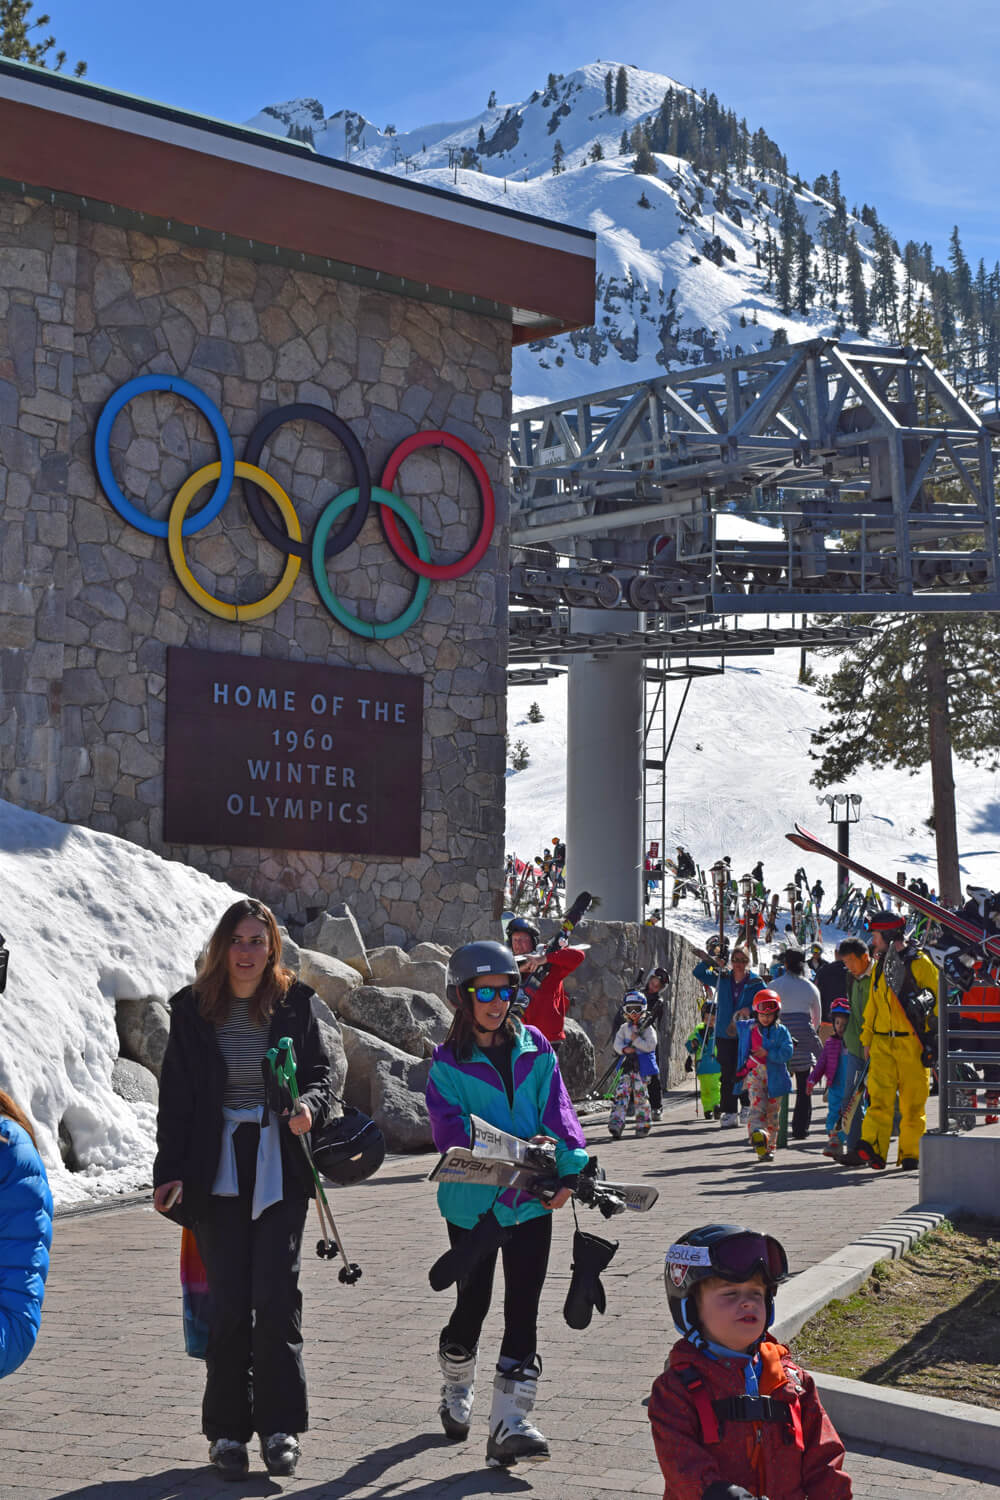 Squaw Valley Alpine Meadows Olympic Center